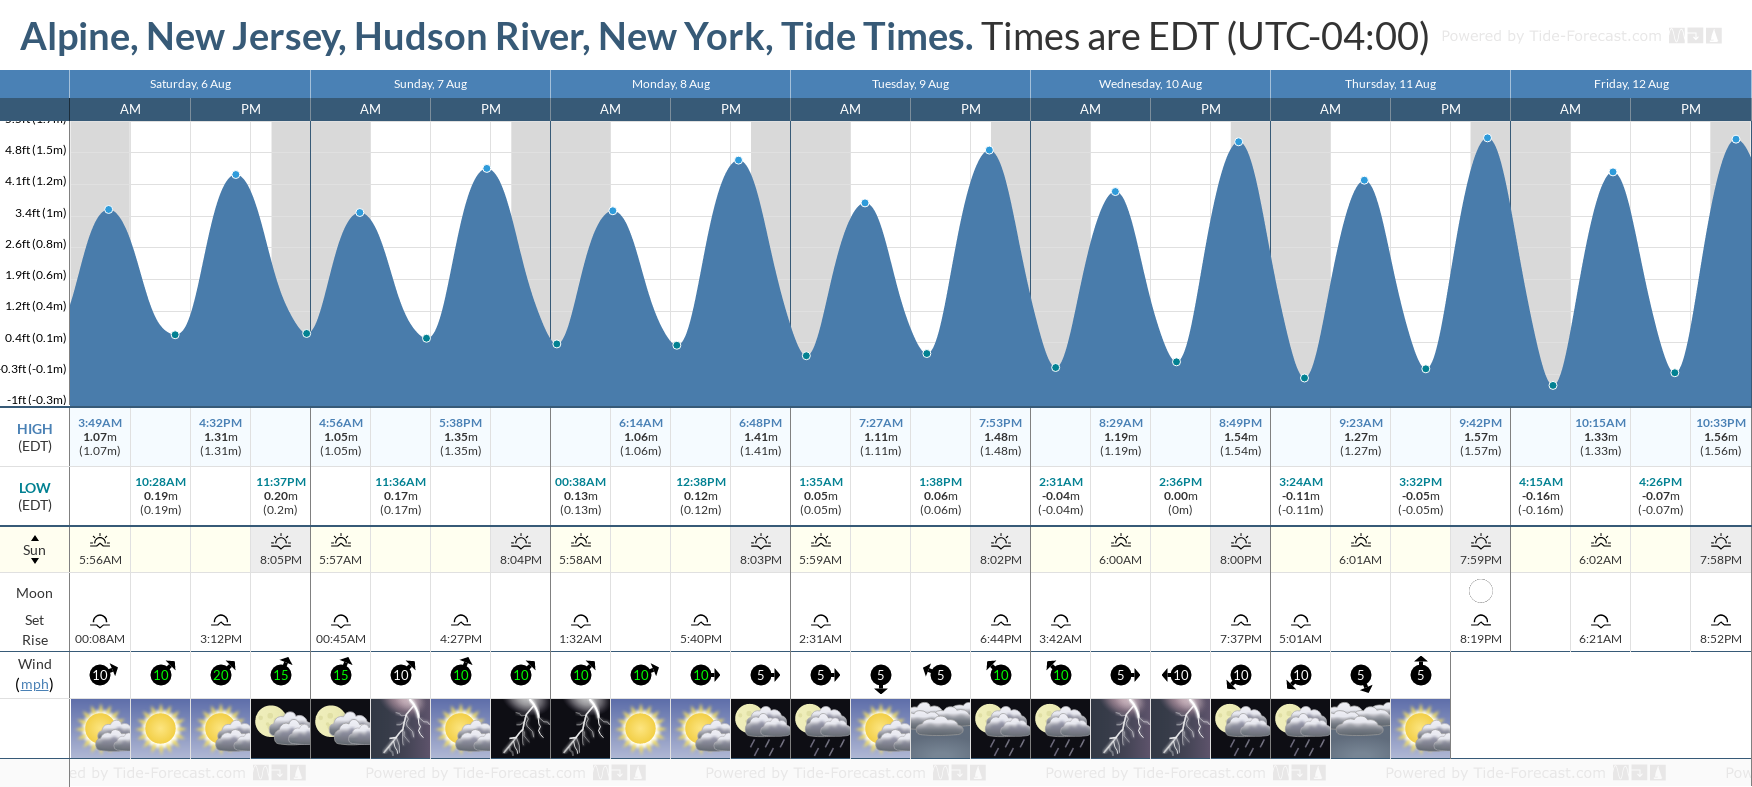 Alpine, New Jersey, Hudson River, New York Tide Chart including high and low tide tide times for the next 7 days